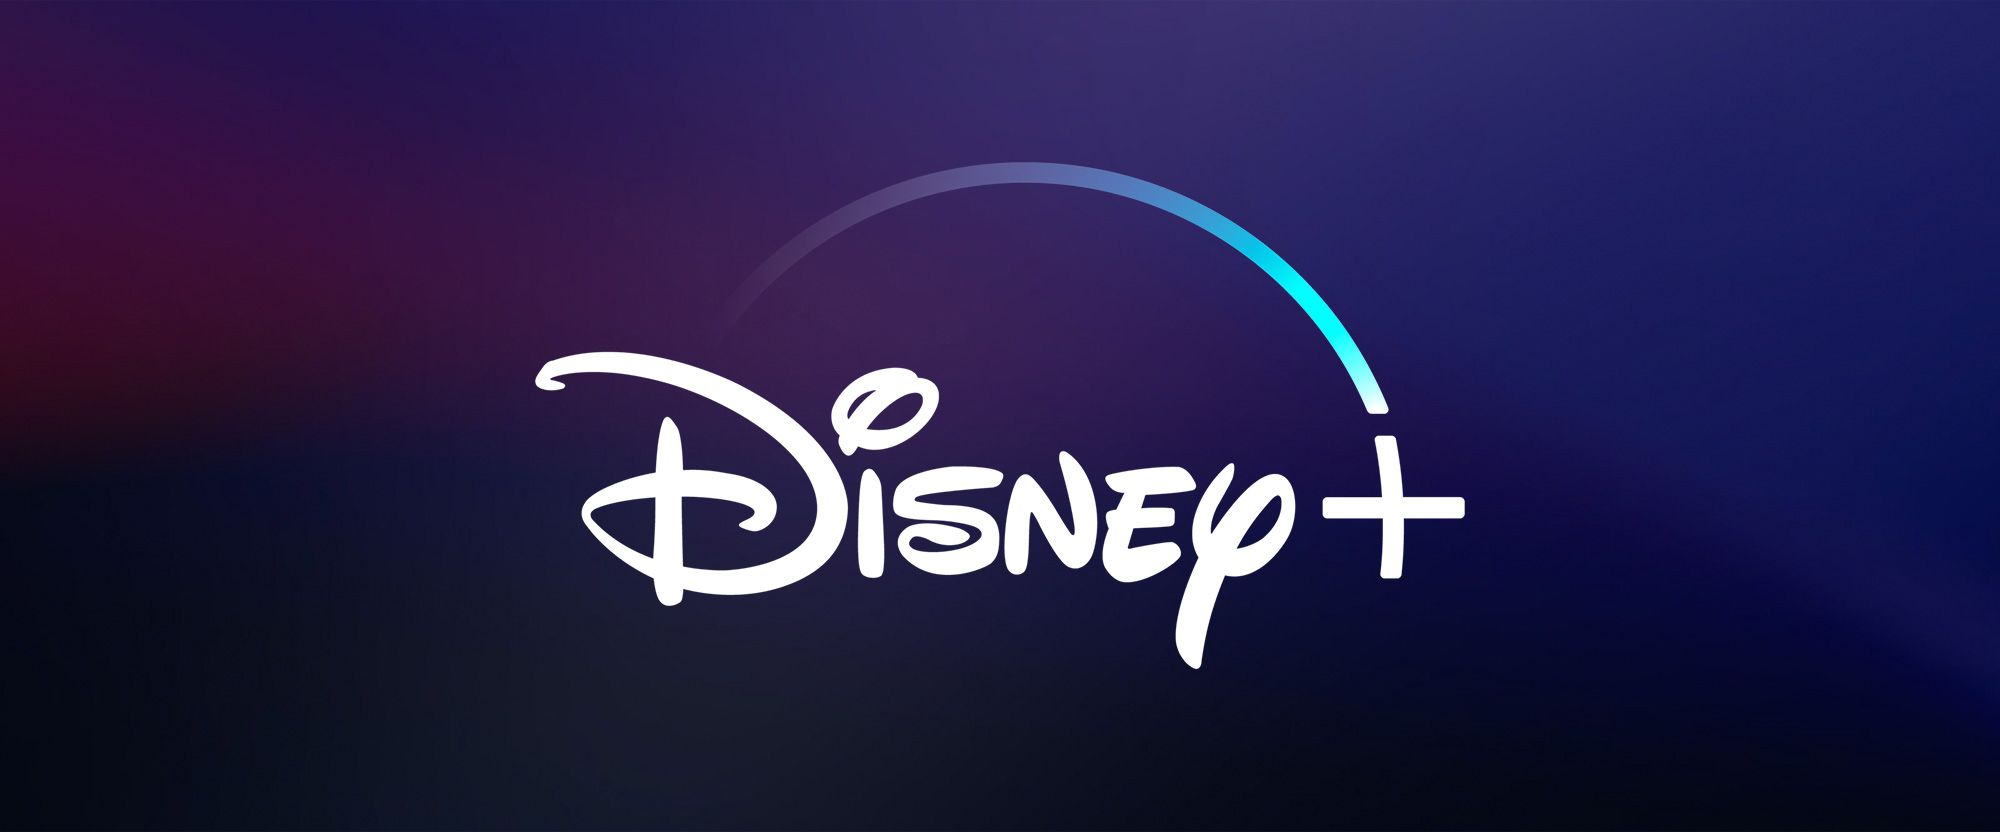 New Name and Logo for Disney+ Logos, Brand it, Neon signs